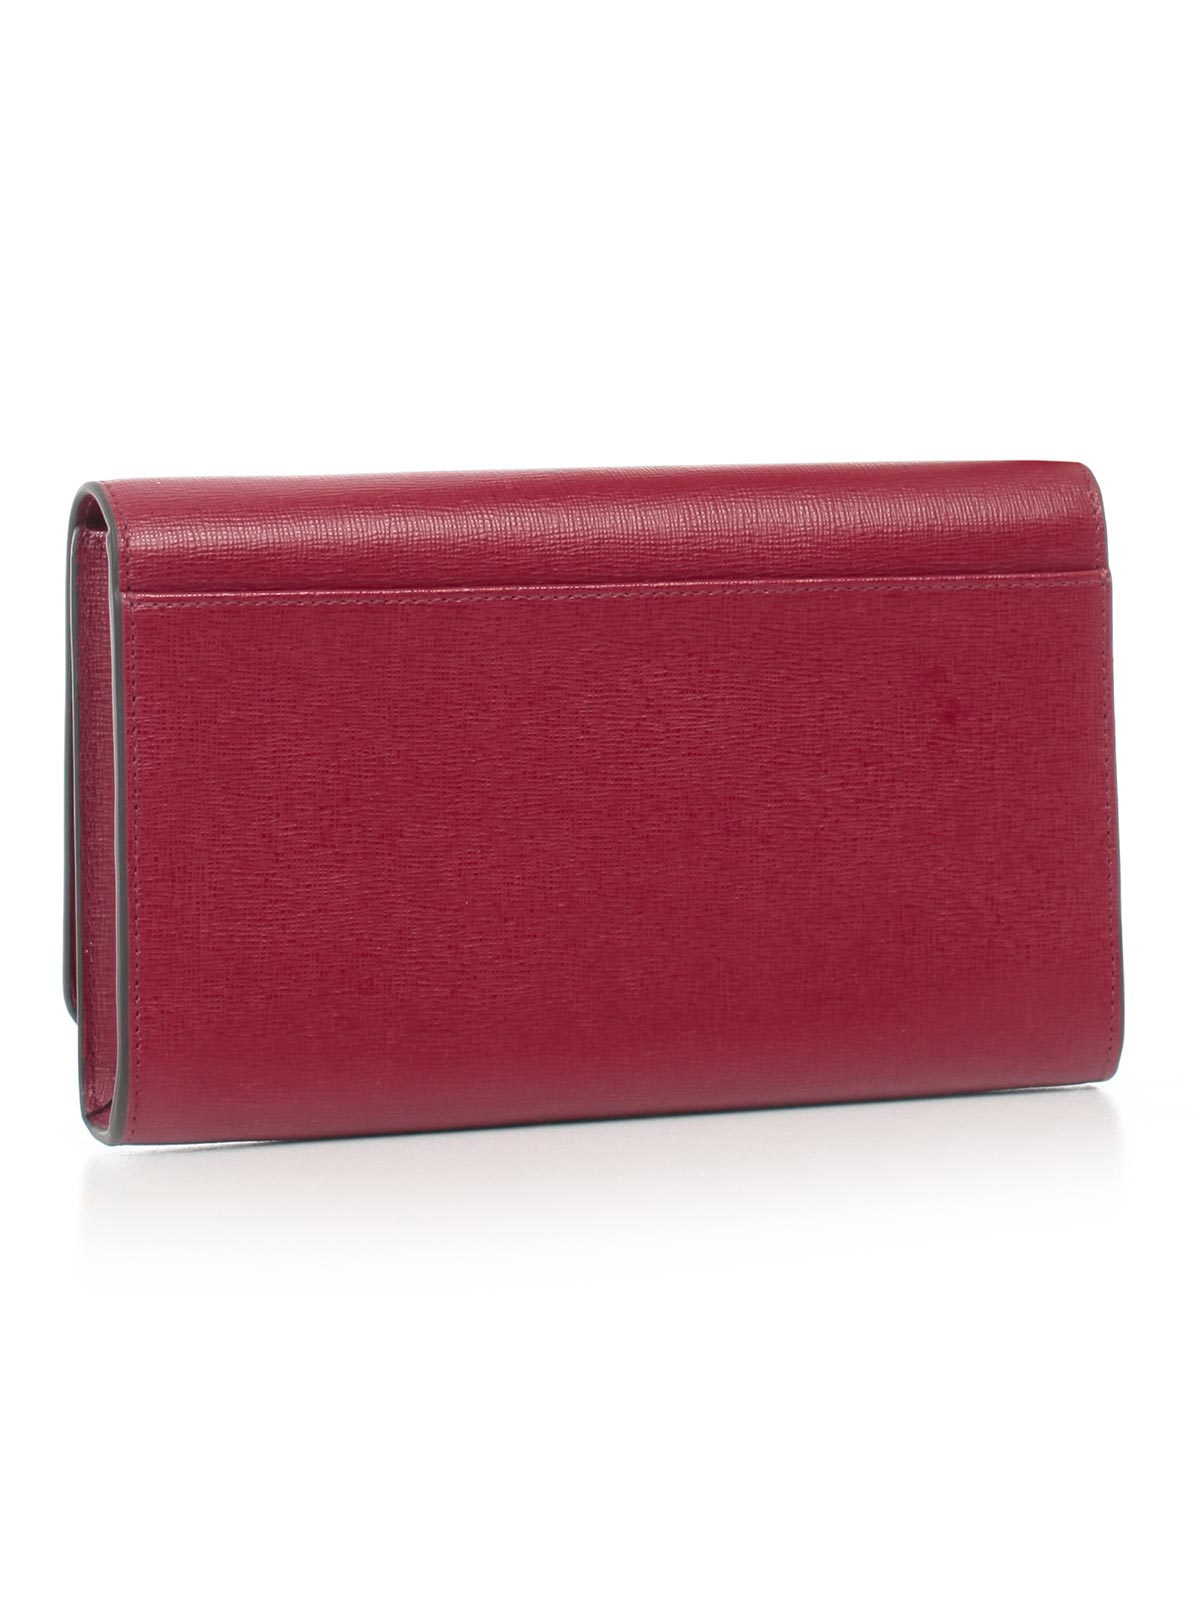 Picture of Furla Wallet